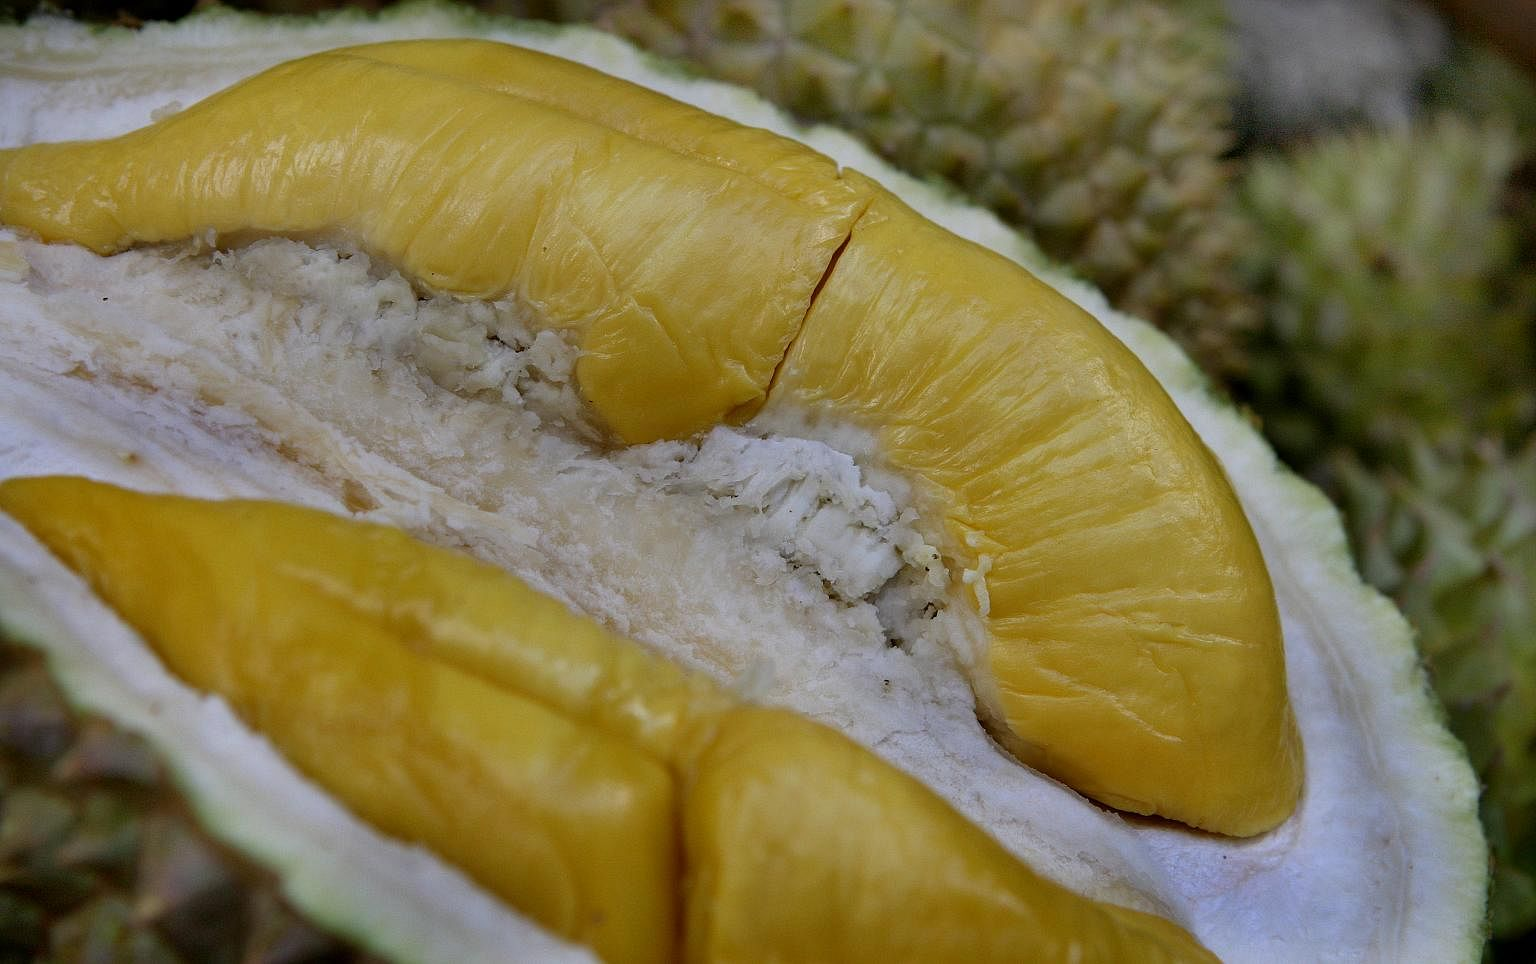 Hail The King Of Fruit 10 Types Of Durians From Malaysia Singapore News Top Stories The Straits Times